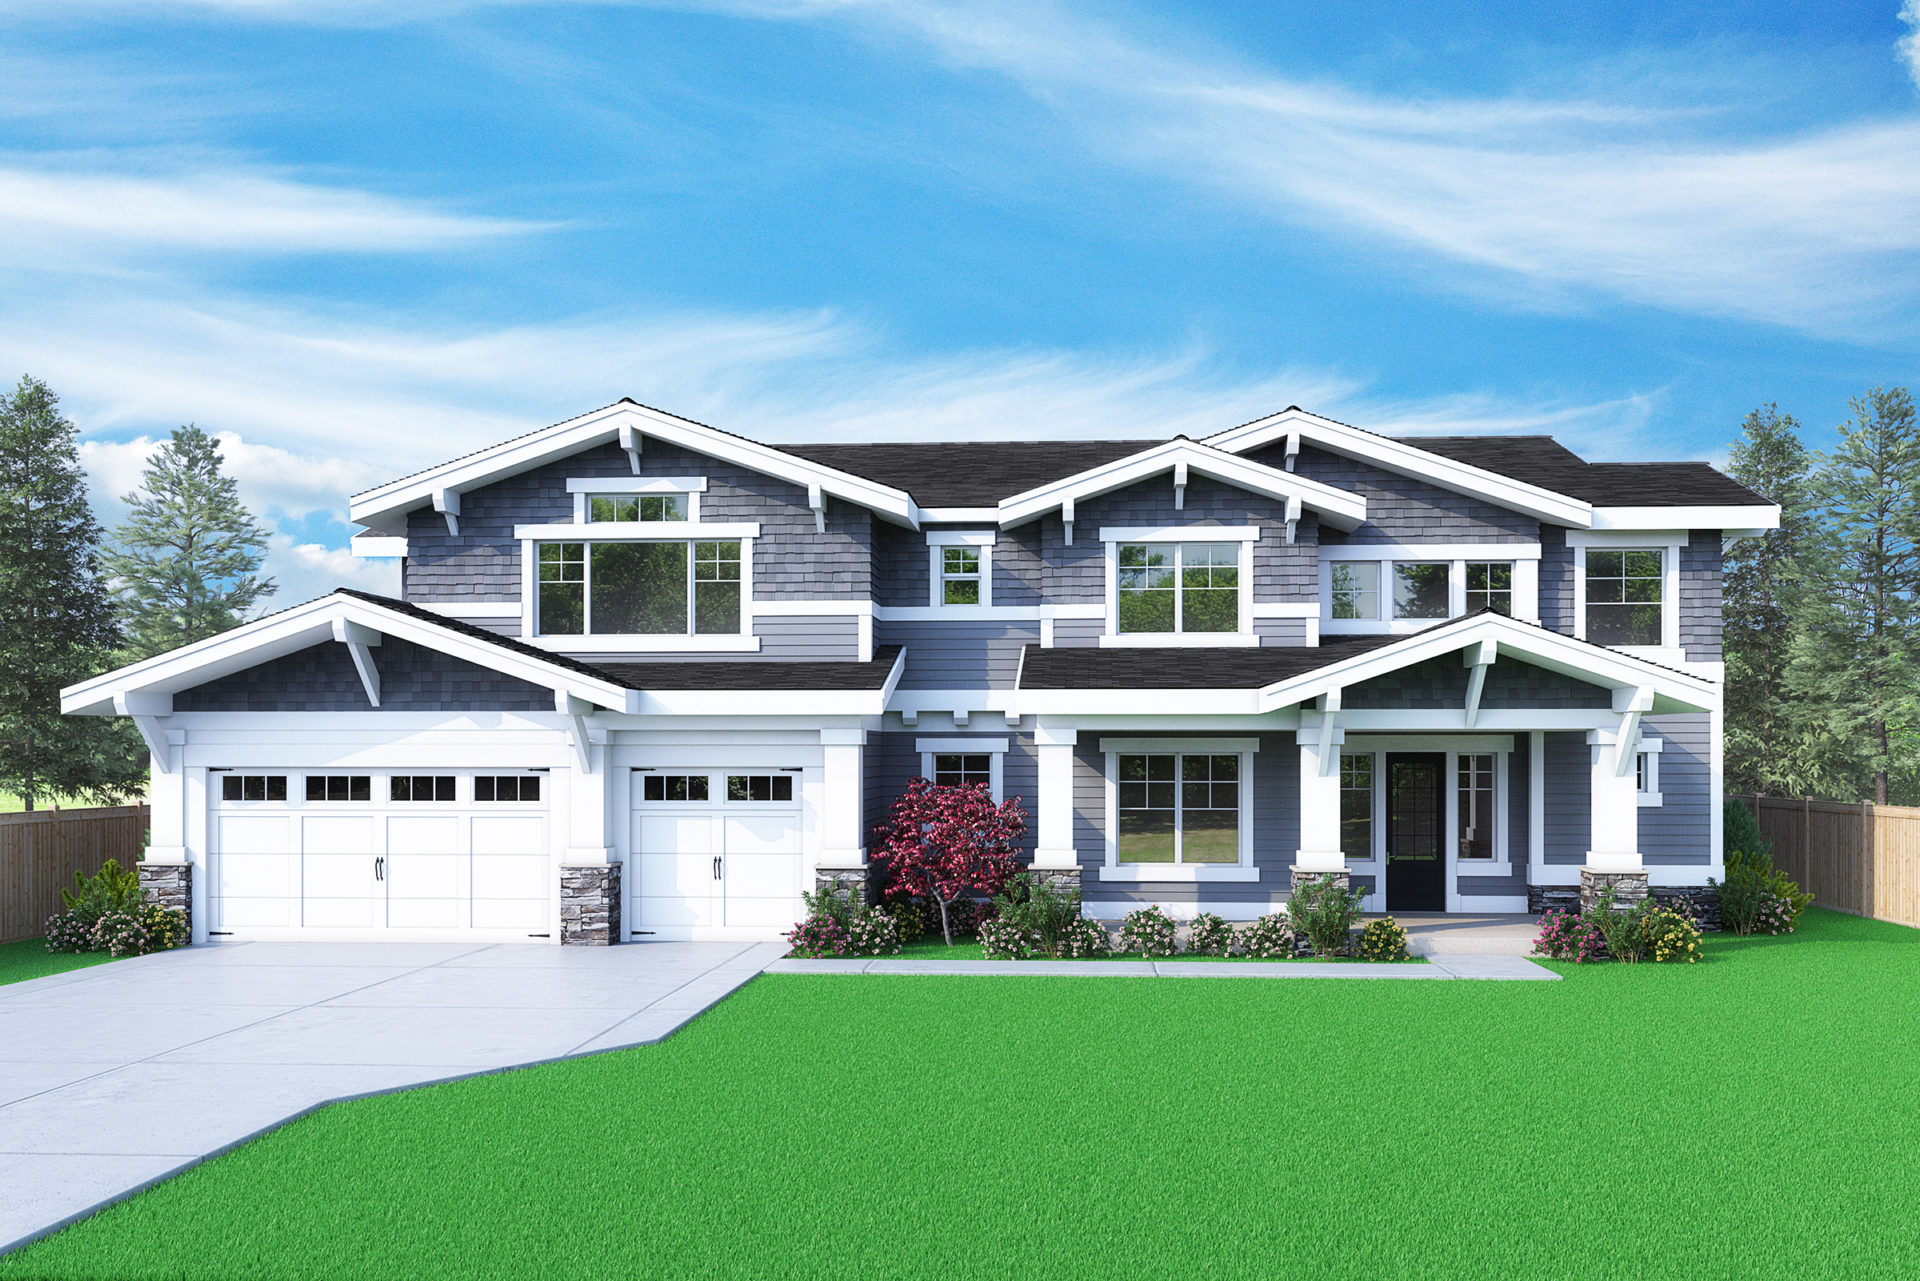 View our new luxury home construction on 2480 155th PL SE, in Bellevue, WA from MN Custom Homes